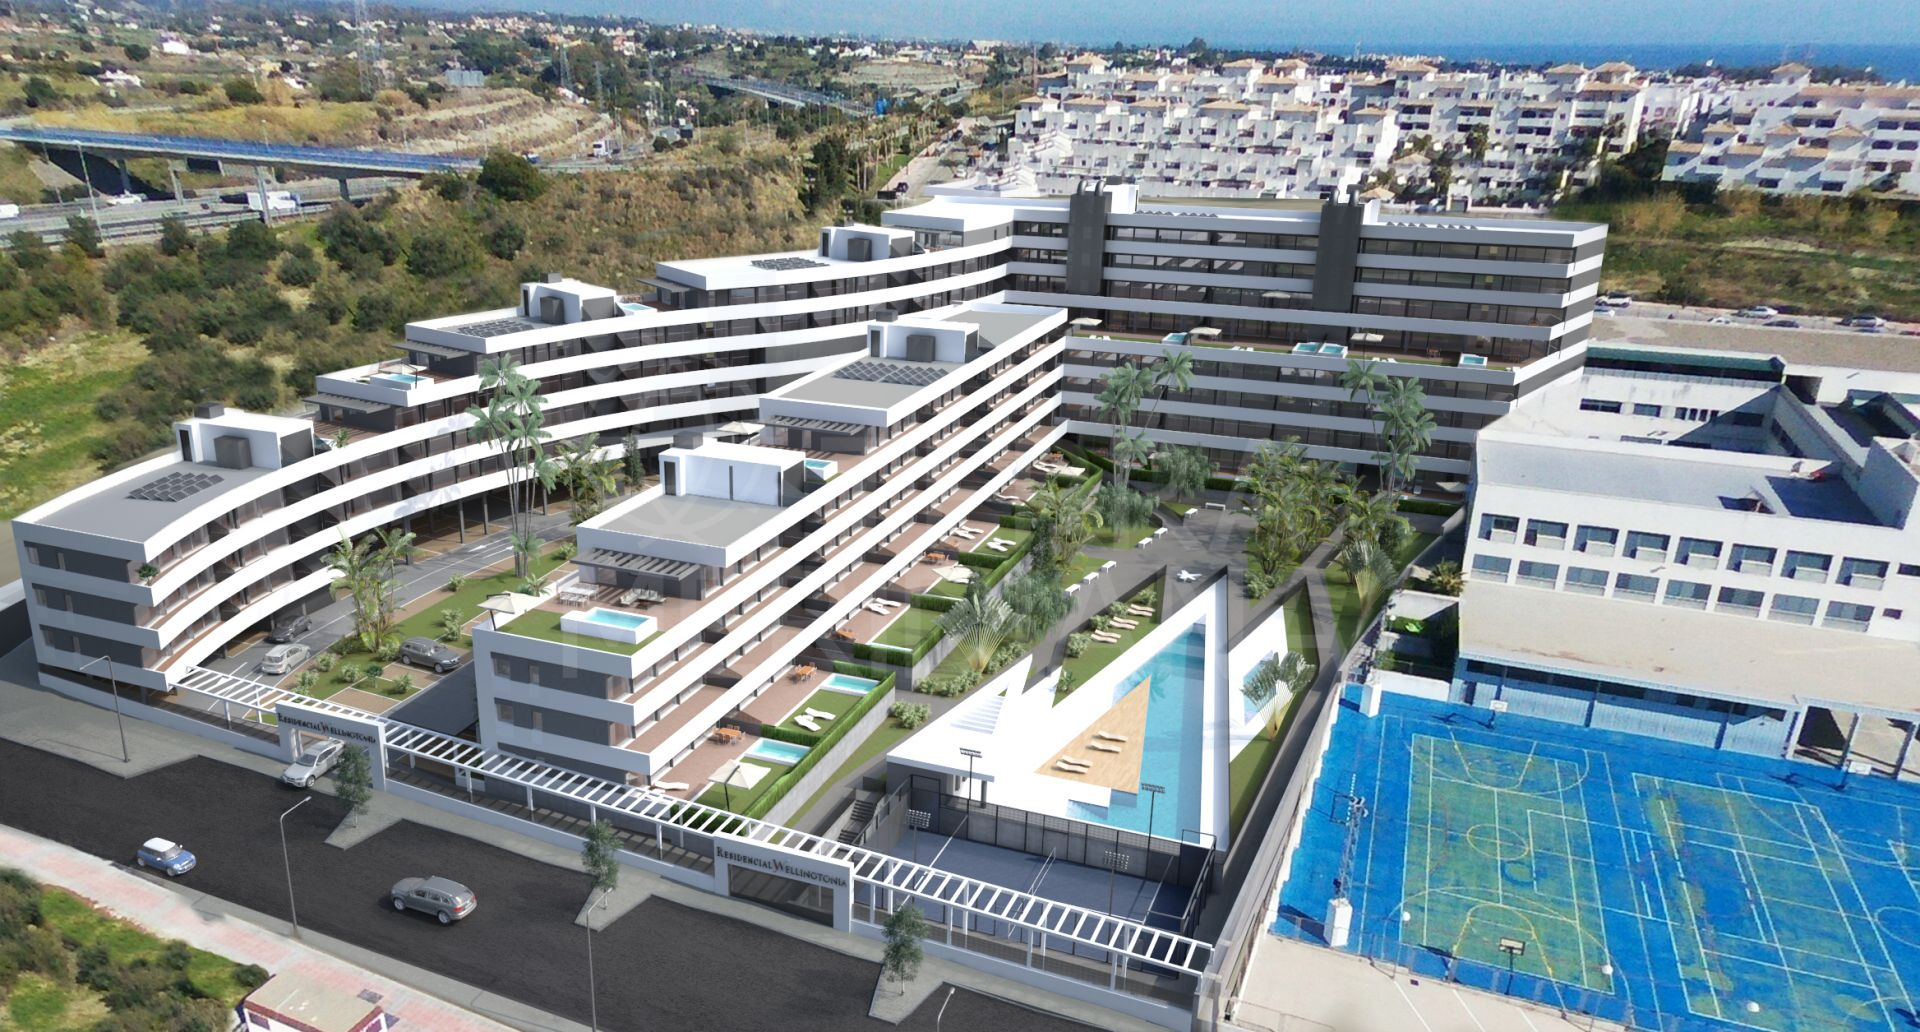 Wellingtonia, Estepona - Superb new development of 110 apartments with 1, 2 and 3 bedrooms near Estepona Centre